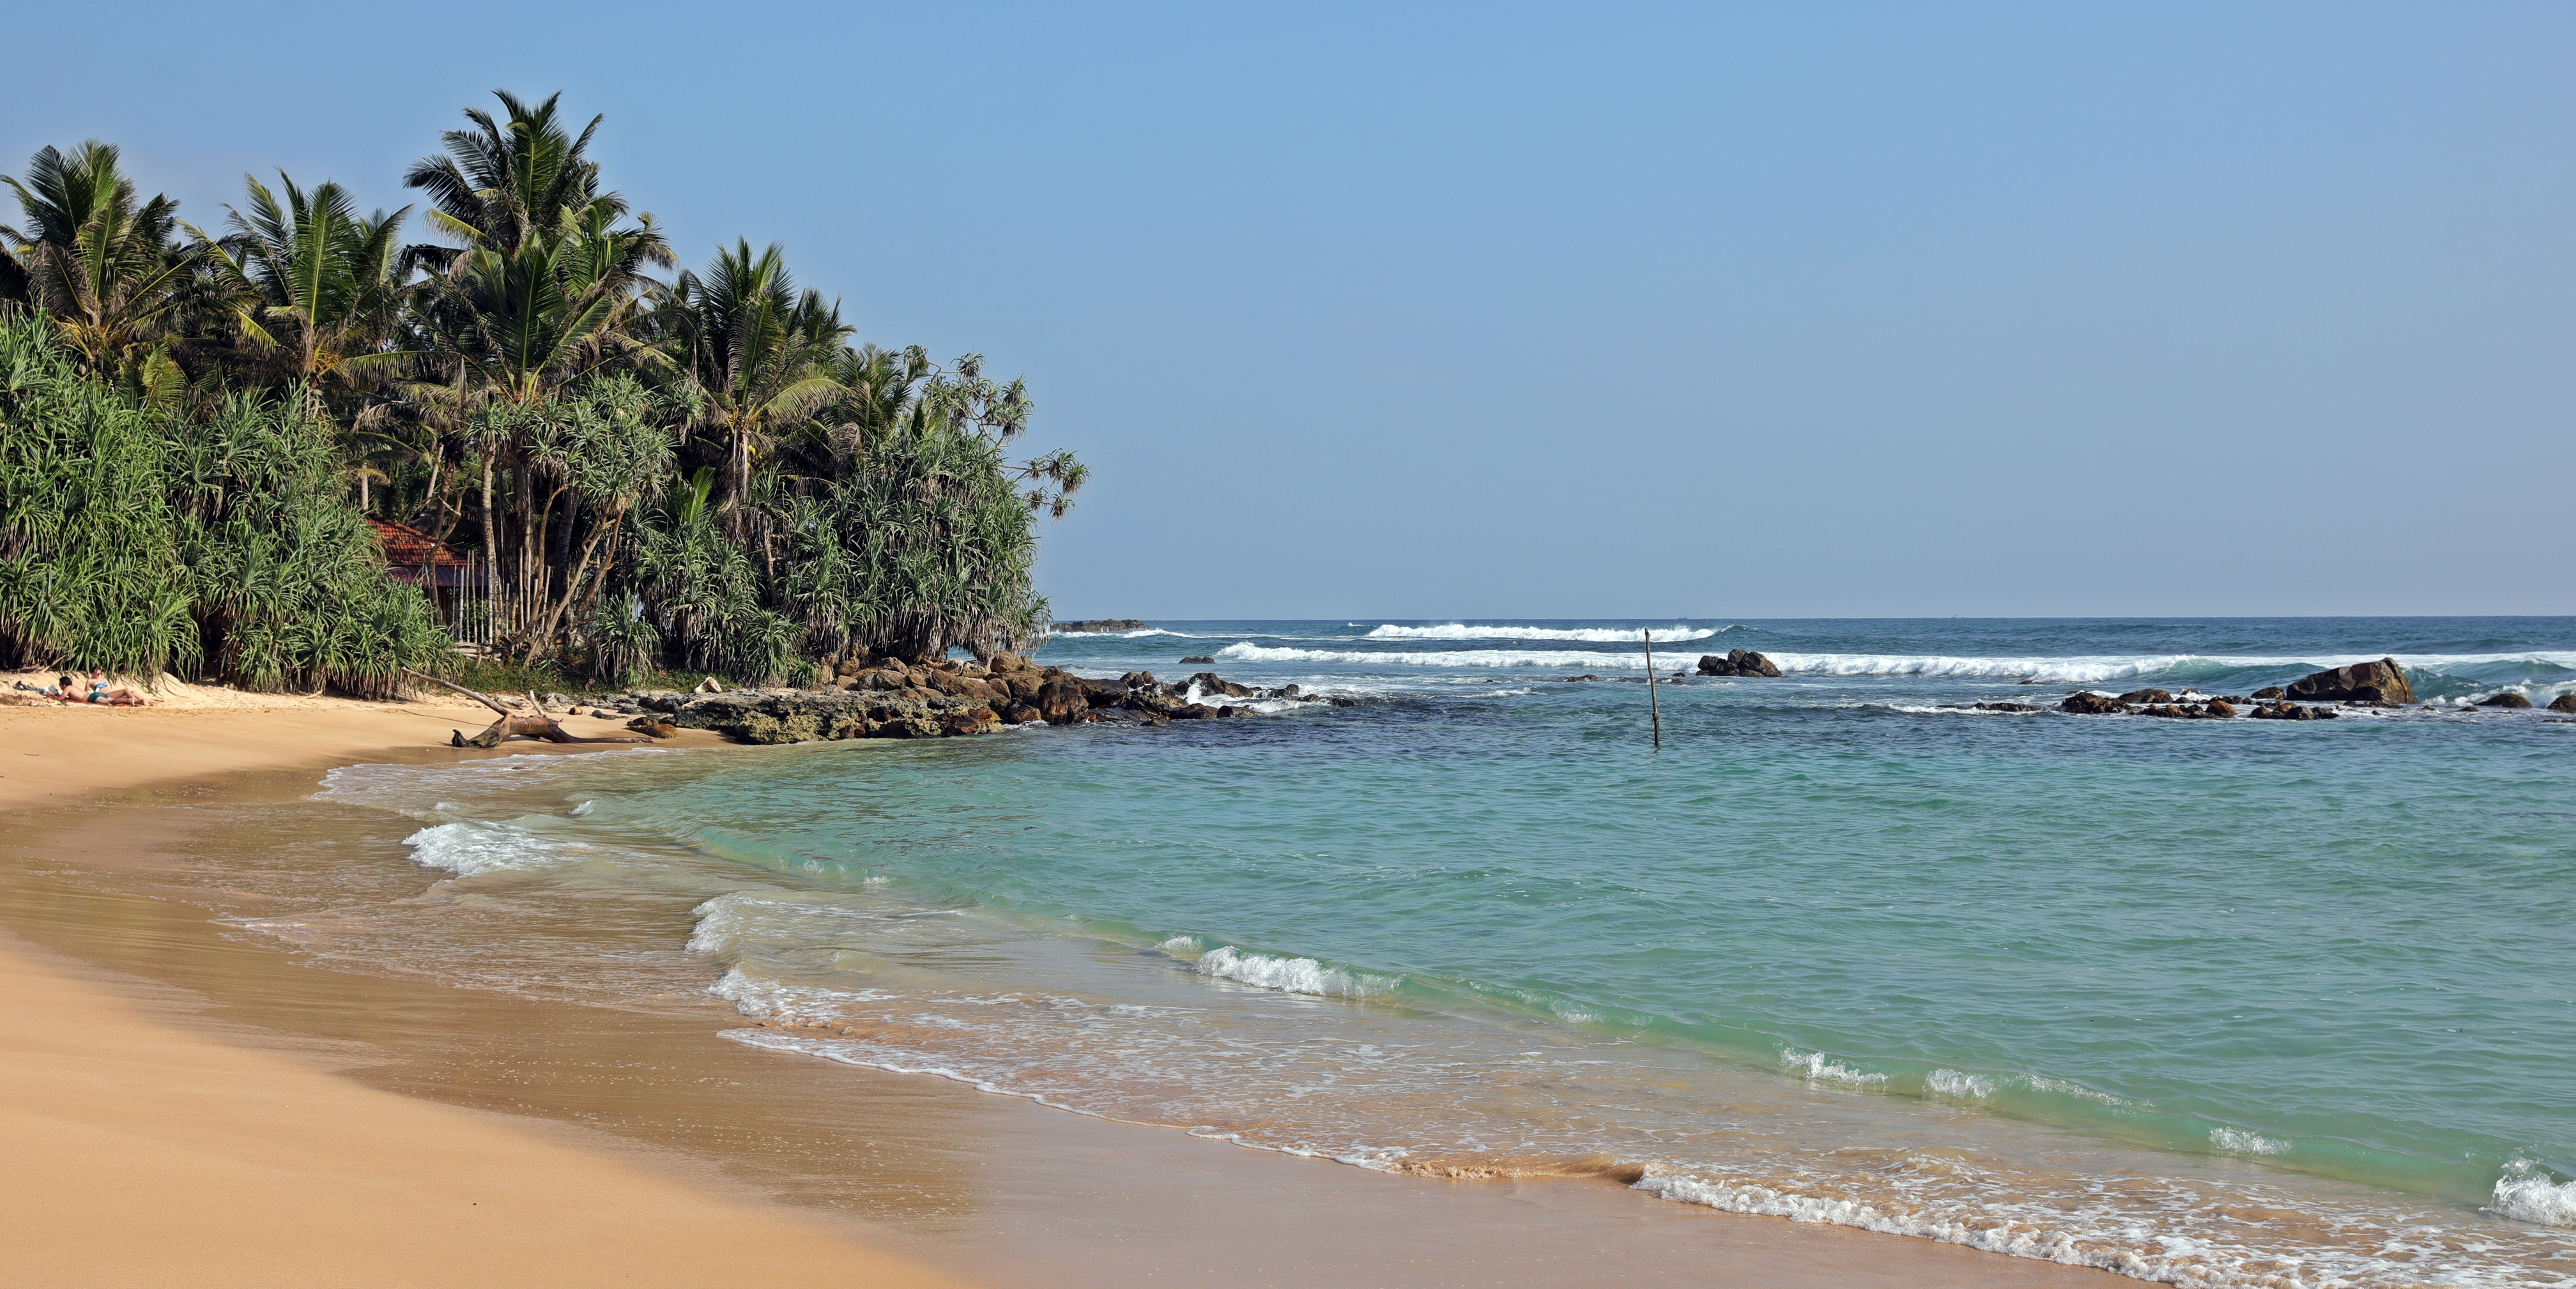 Beach near Midigama, Sri Lanka